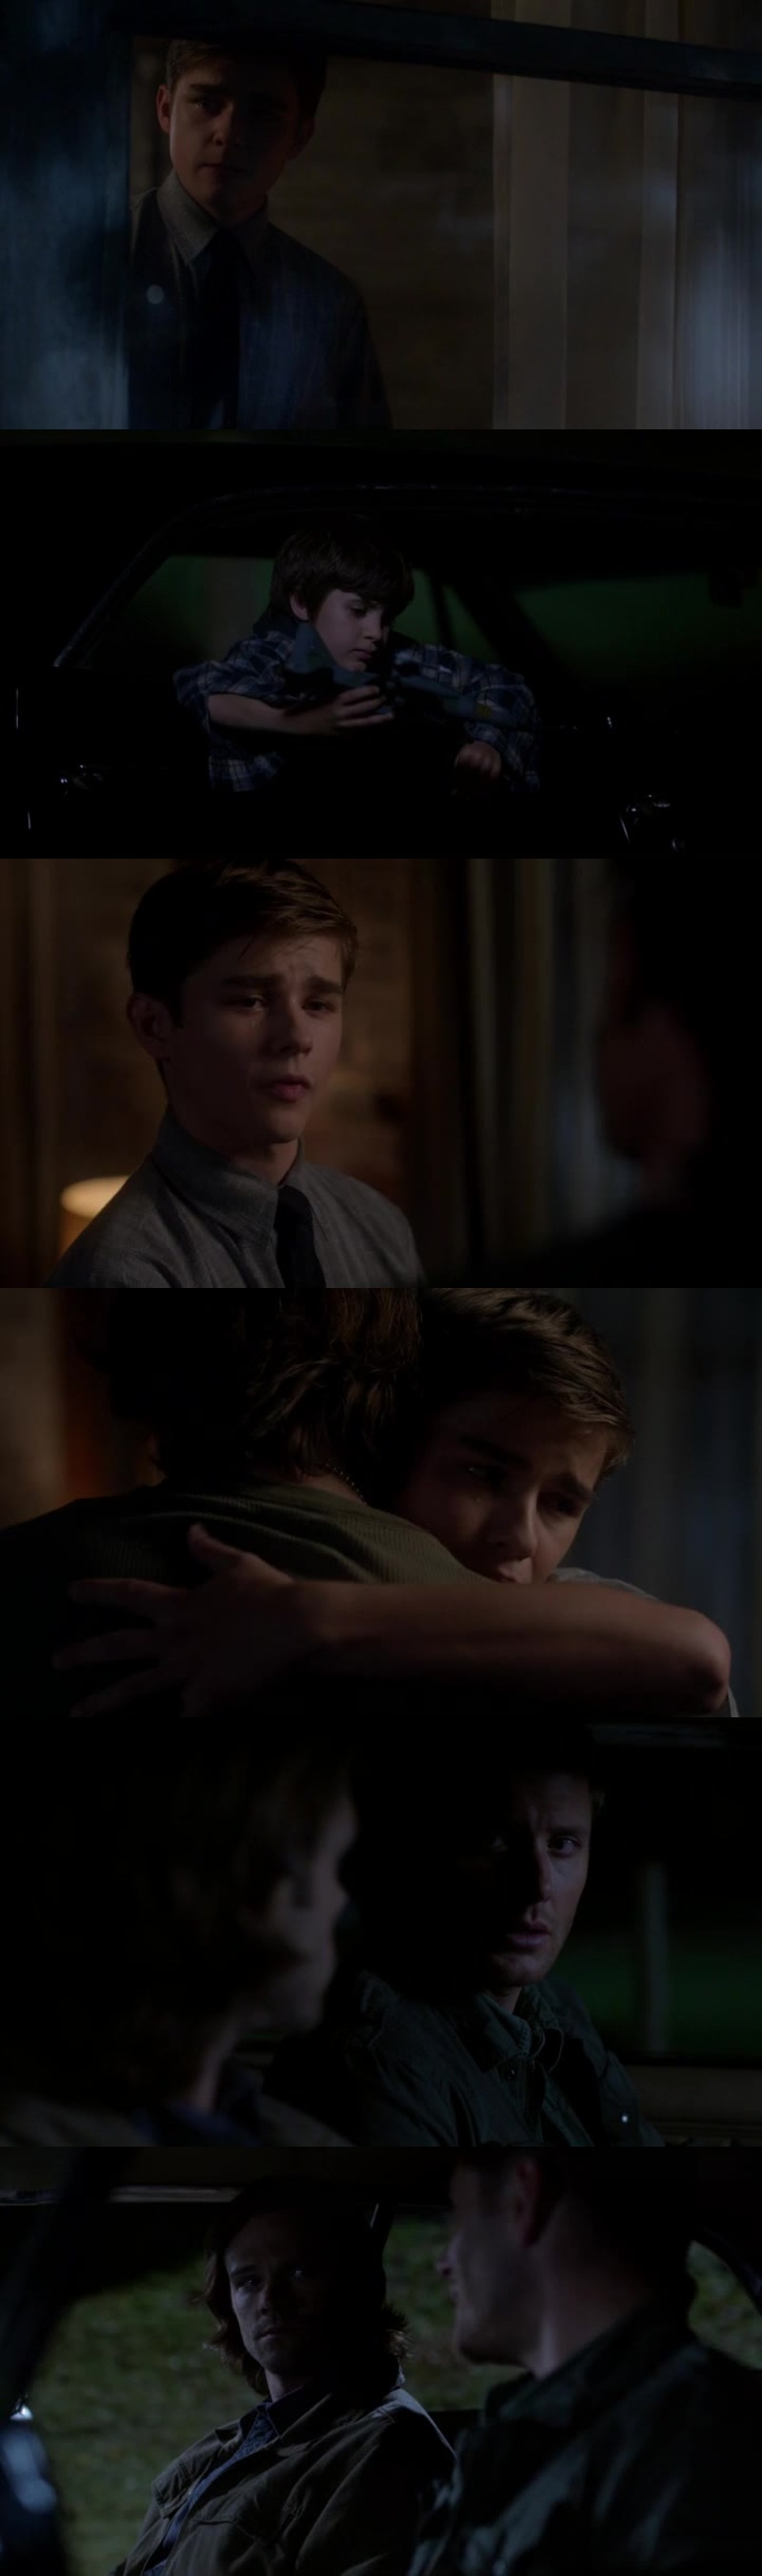 They always make me cry at the end of every episode 😭  - Dean is born to be a hero..  - Anything for Sam before anyone else 💔